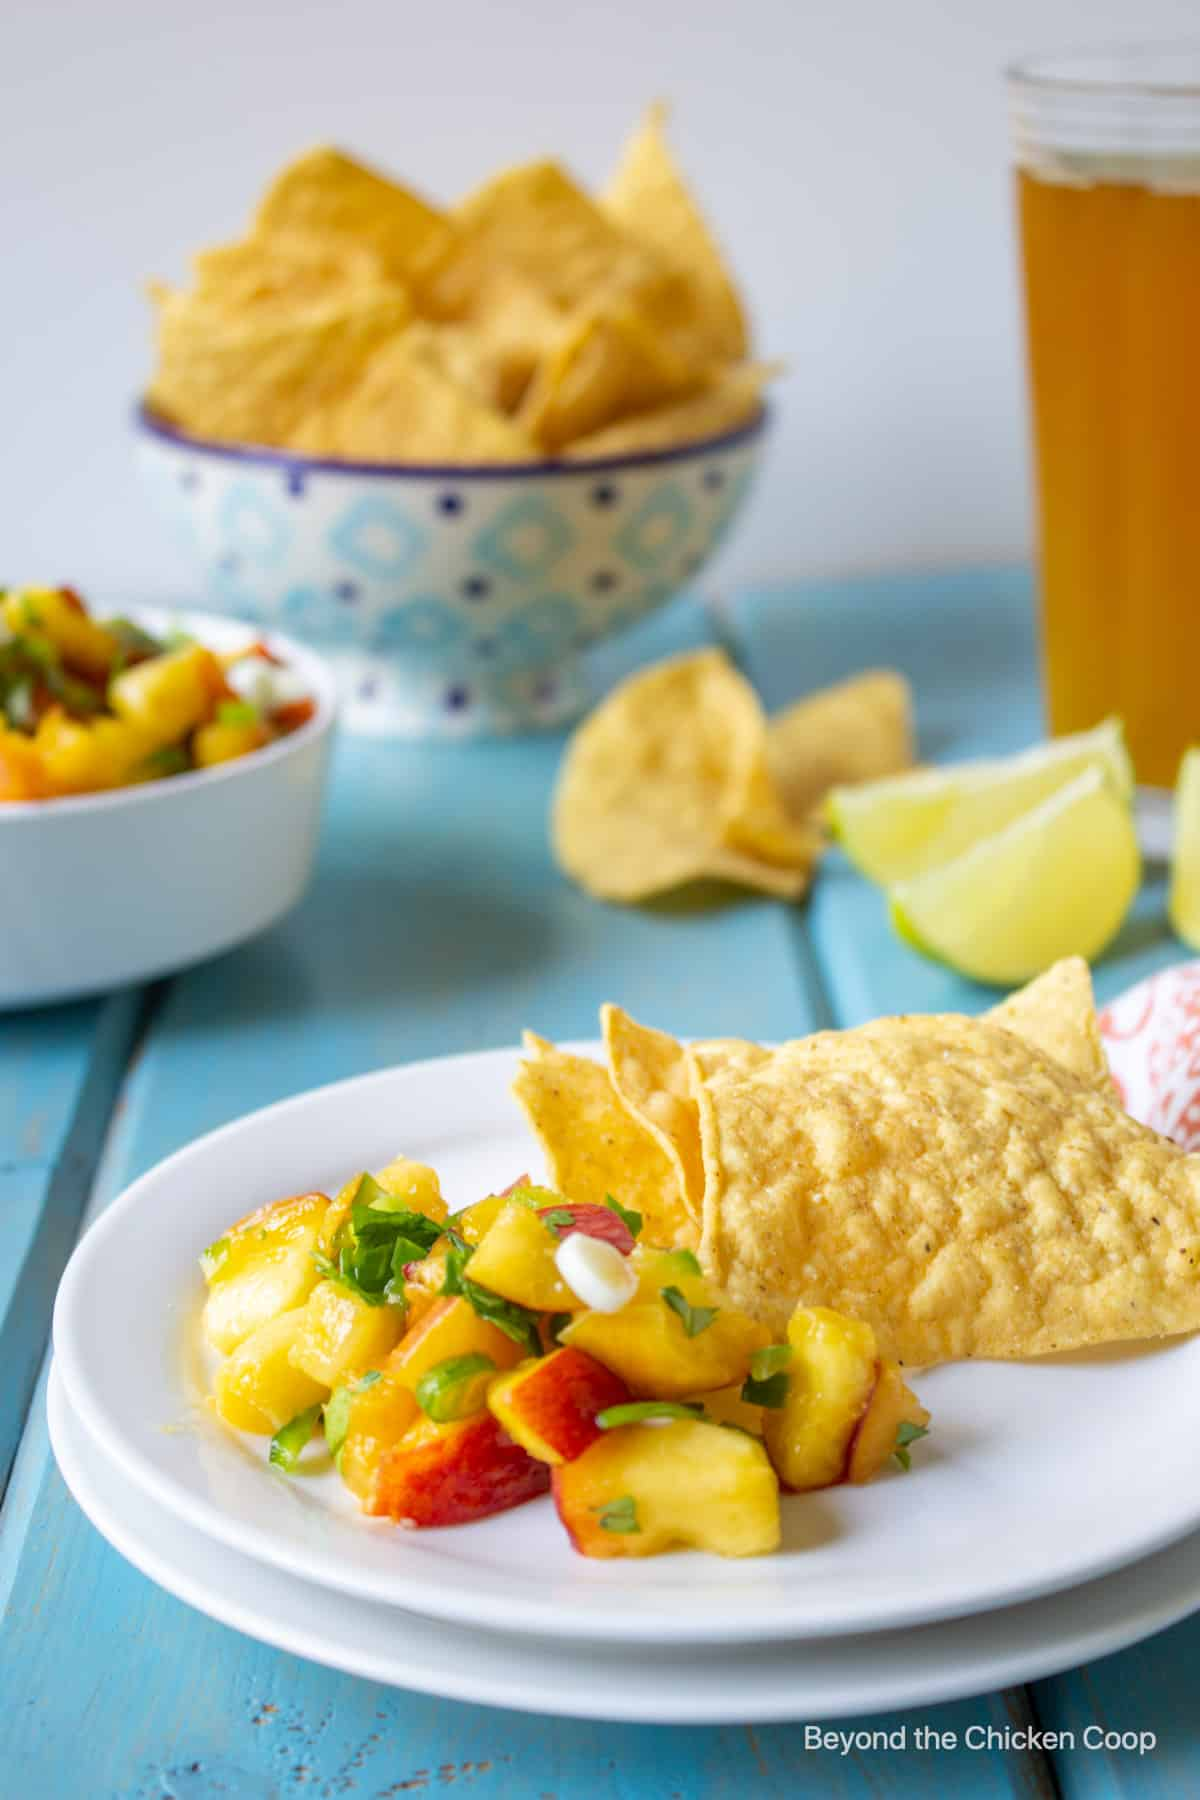 Fresh fruit salsa with corn chips.